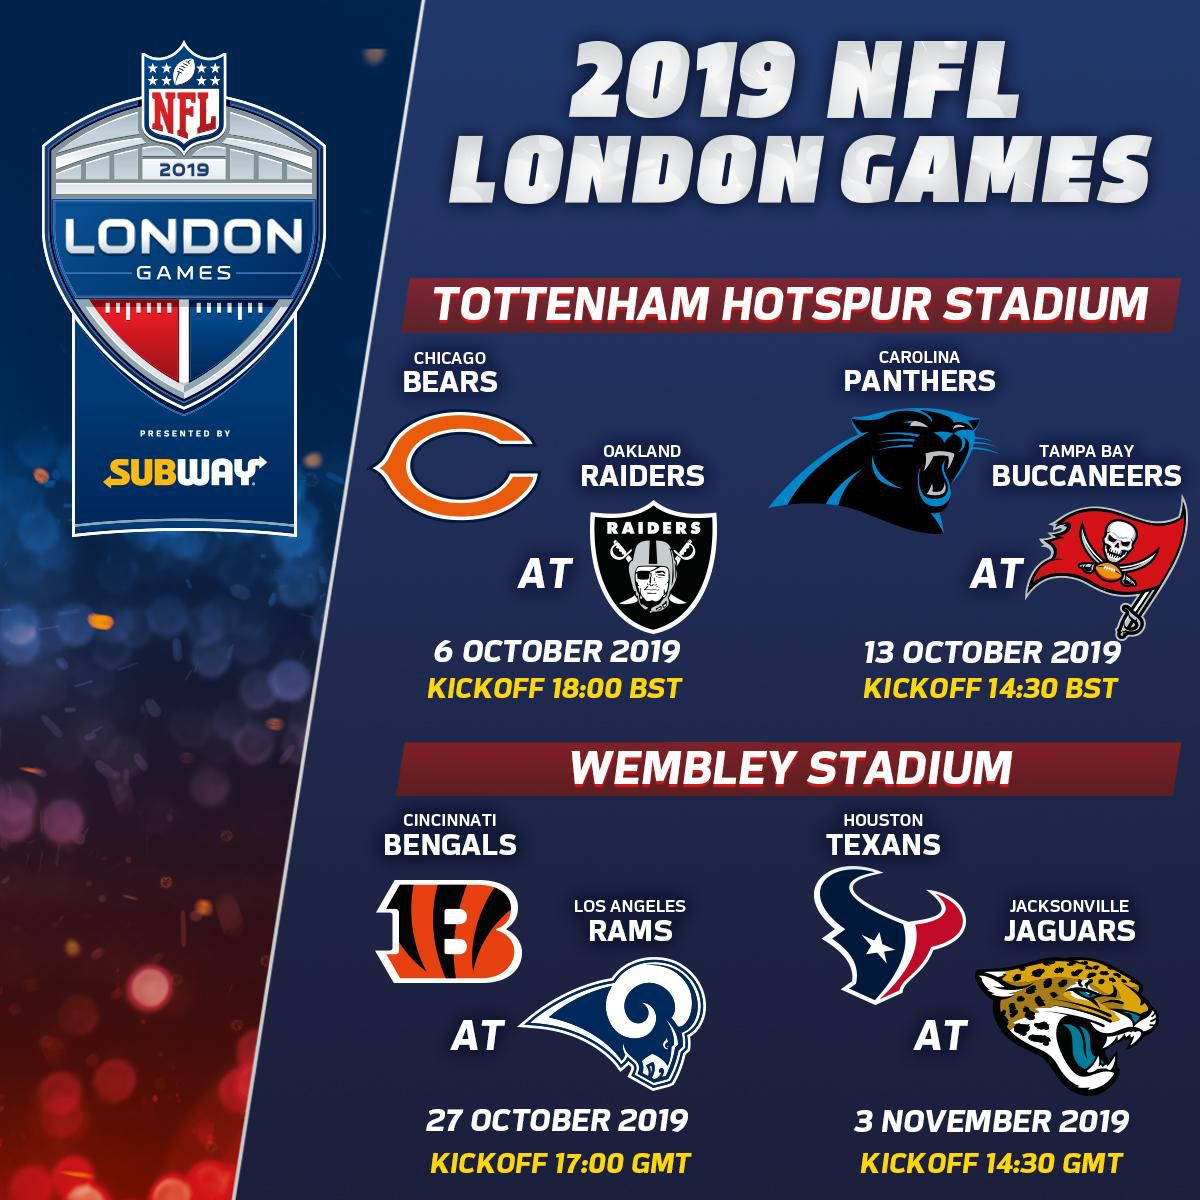 Nfl Games In London